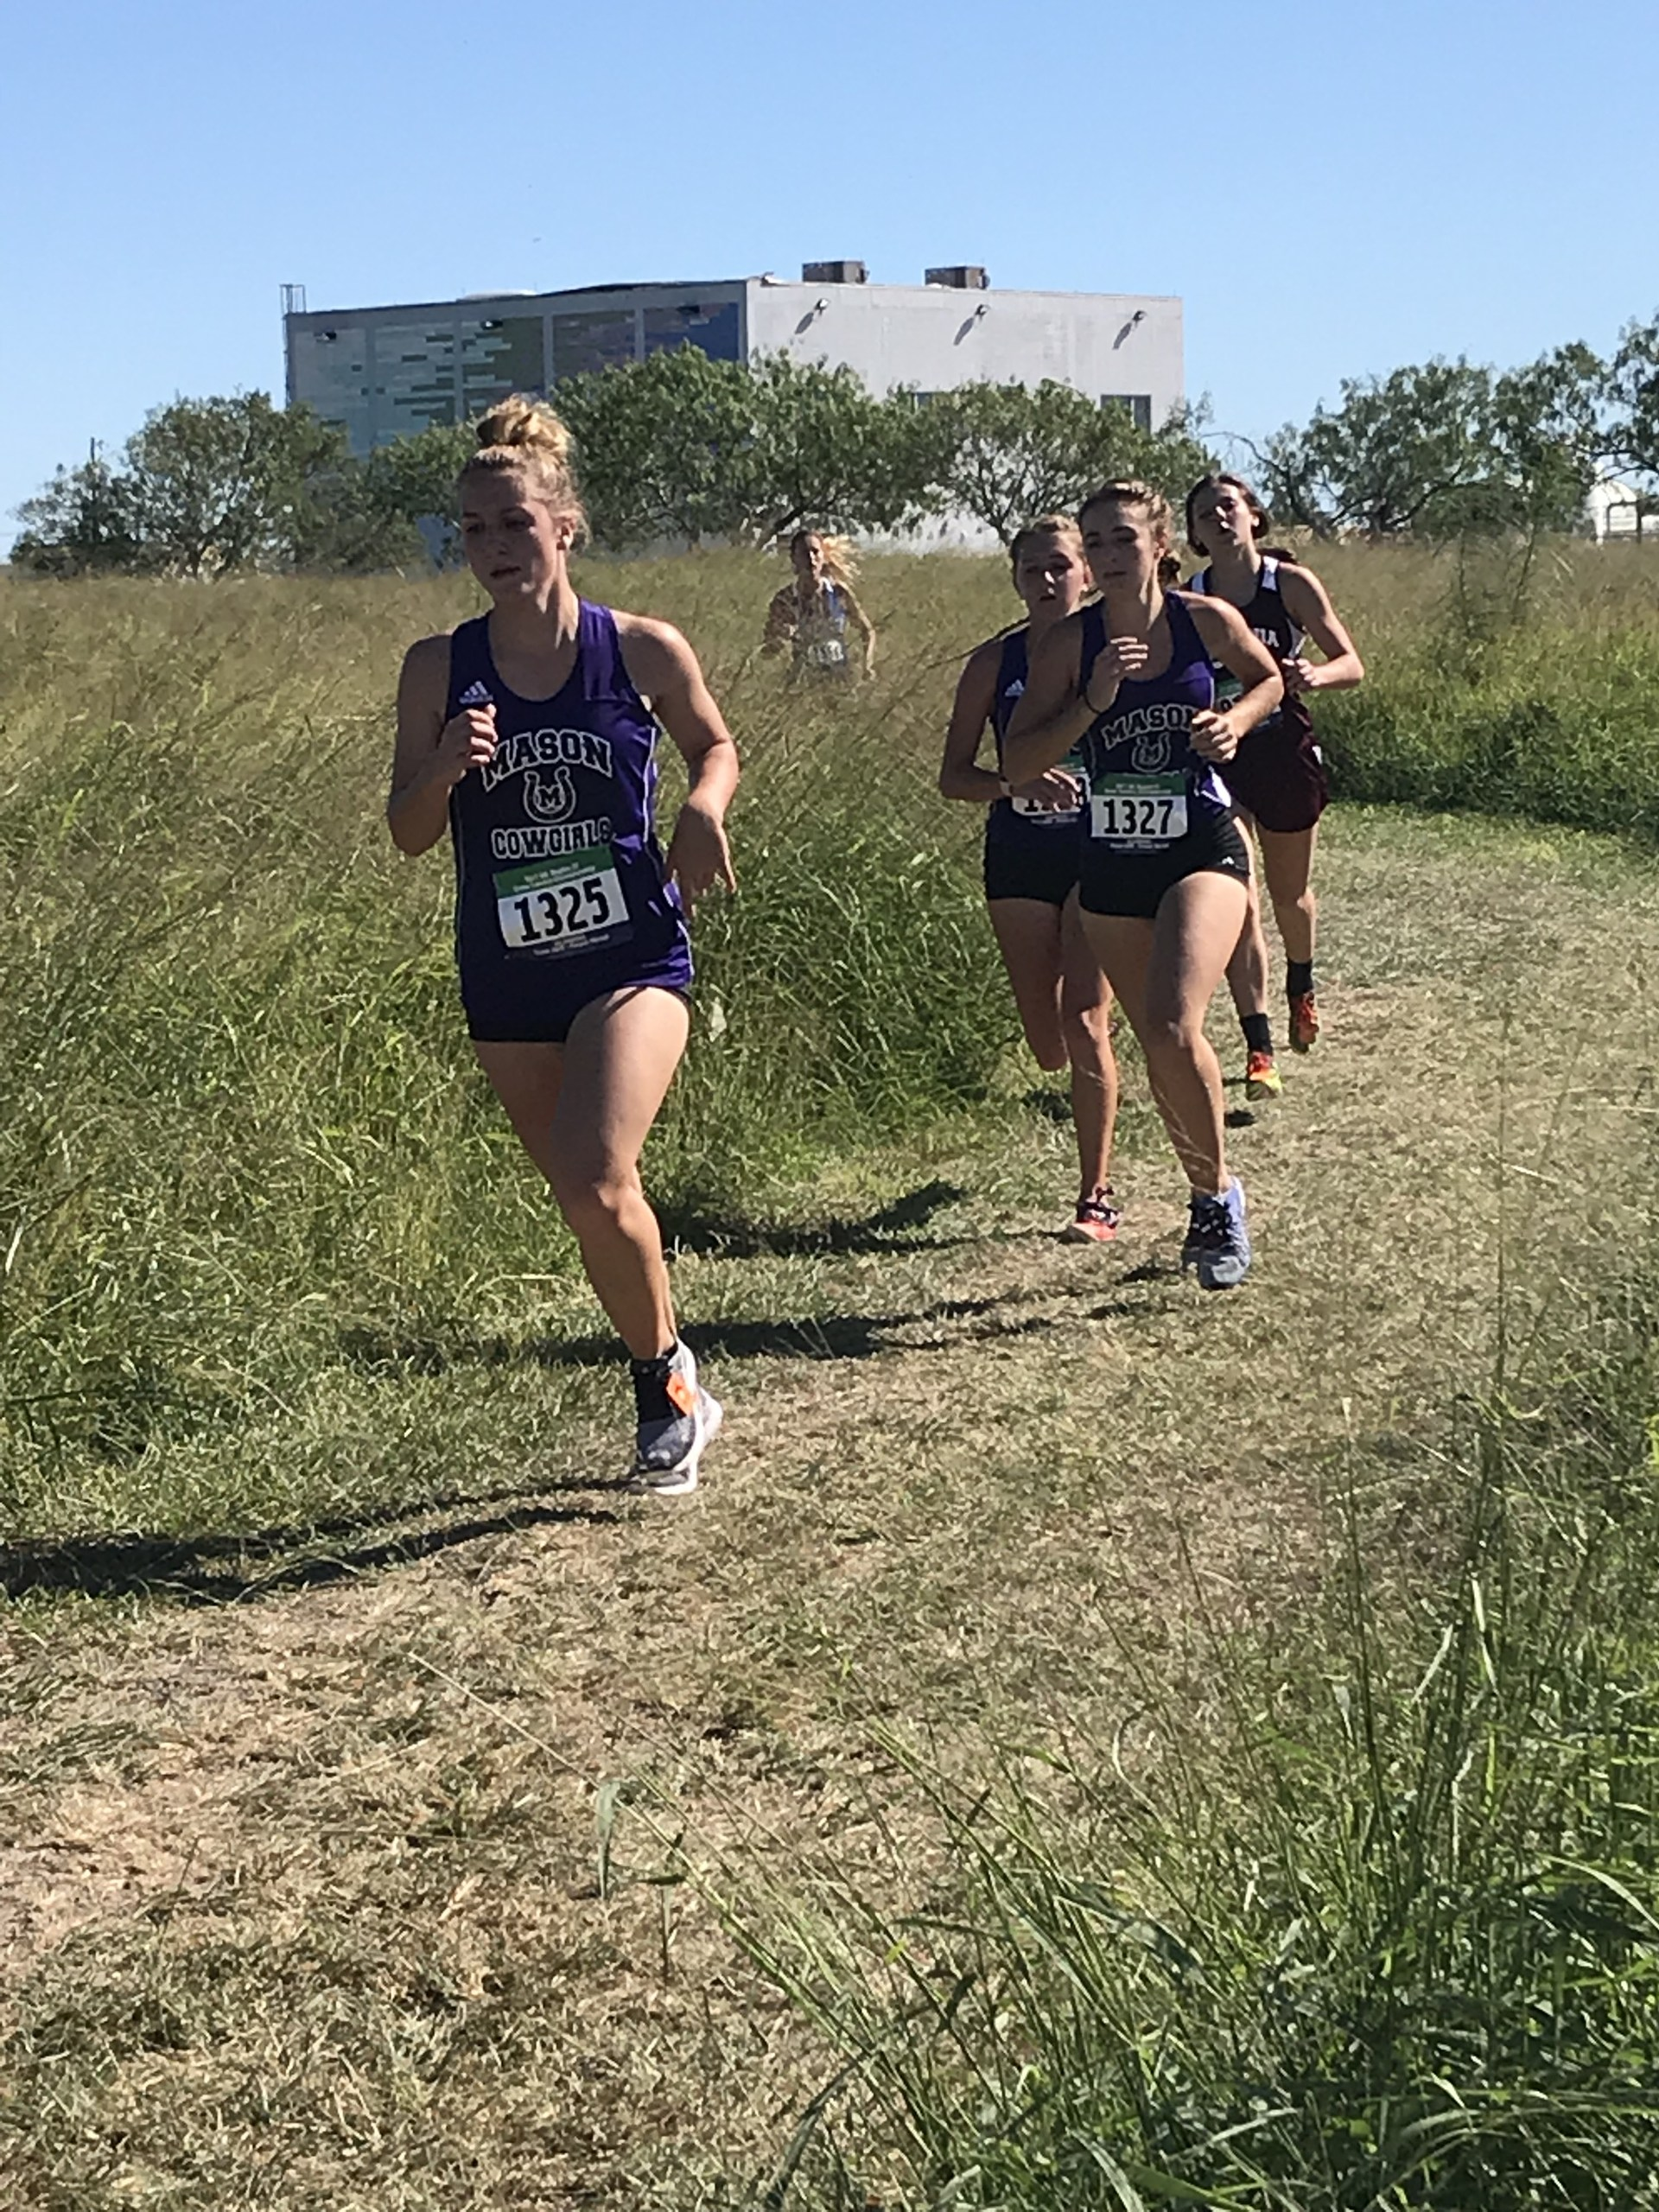 2017 Regional Cross Country Course - Presley, Ella, Peyton